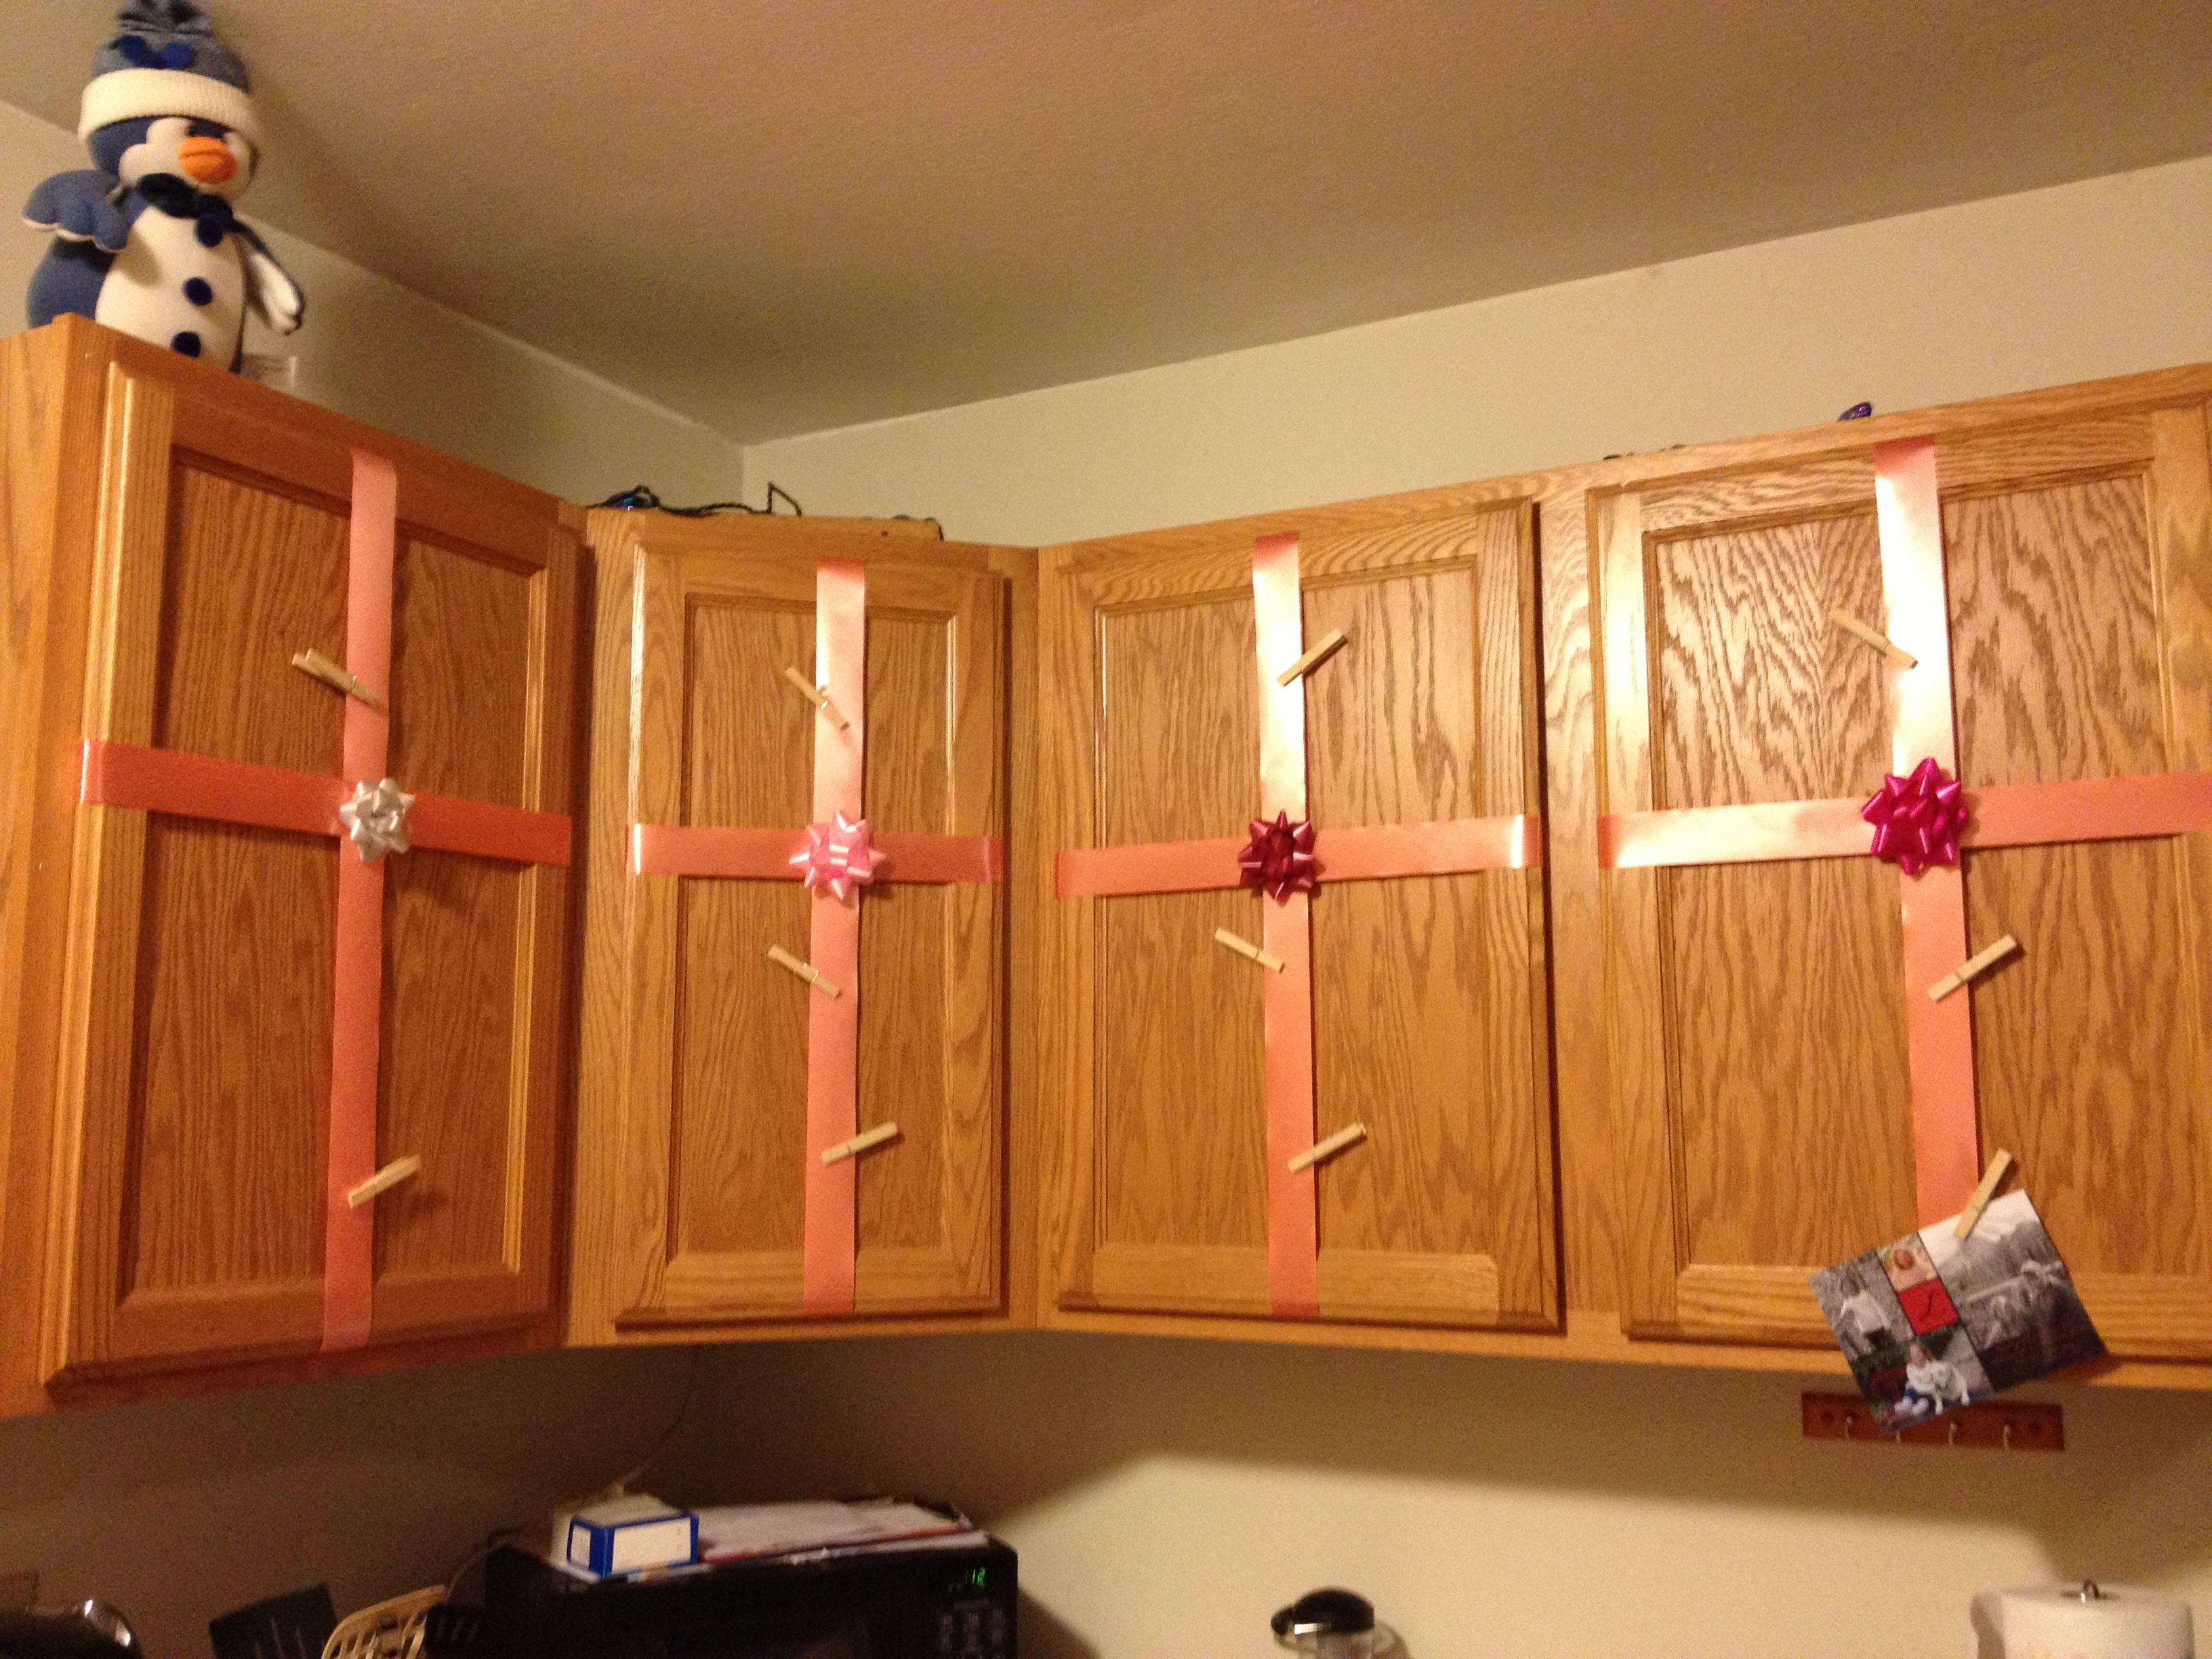 Wrapped Up My Cabinets To Hang My Christmas Cards On Them With